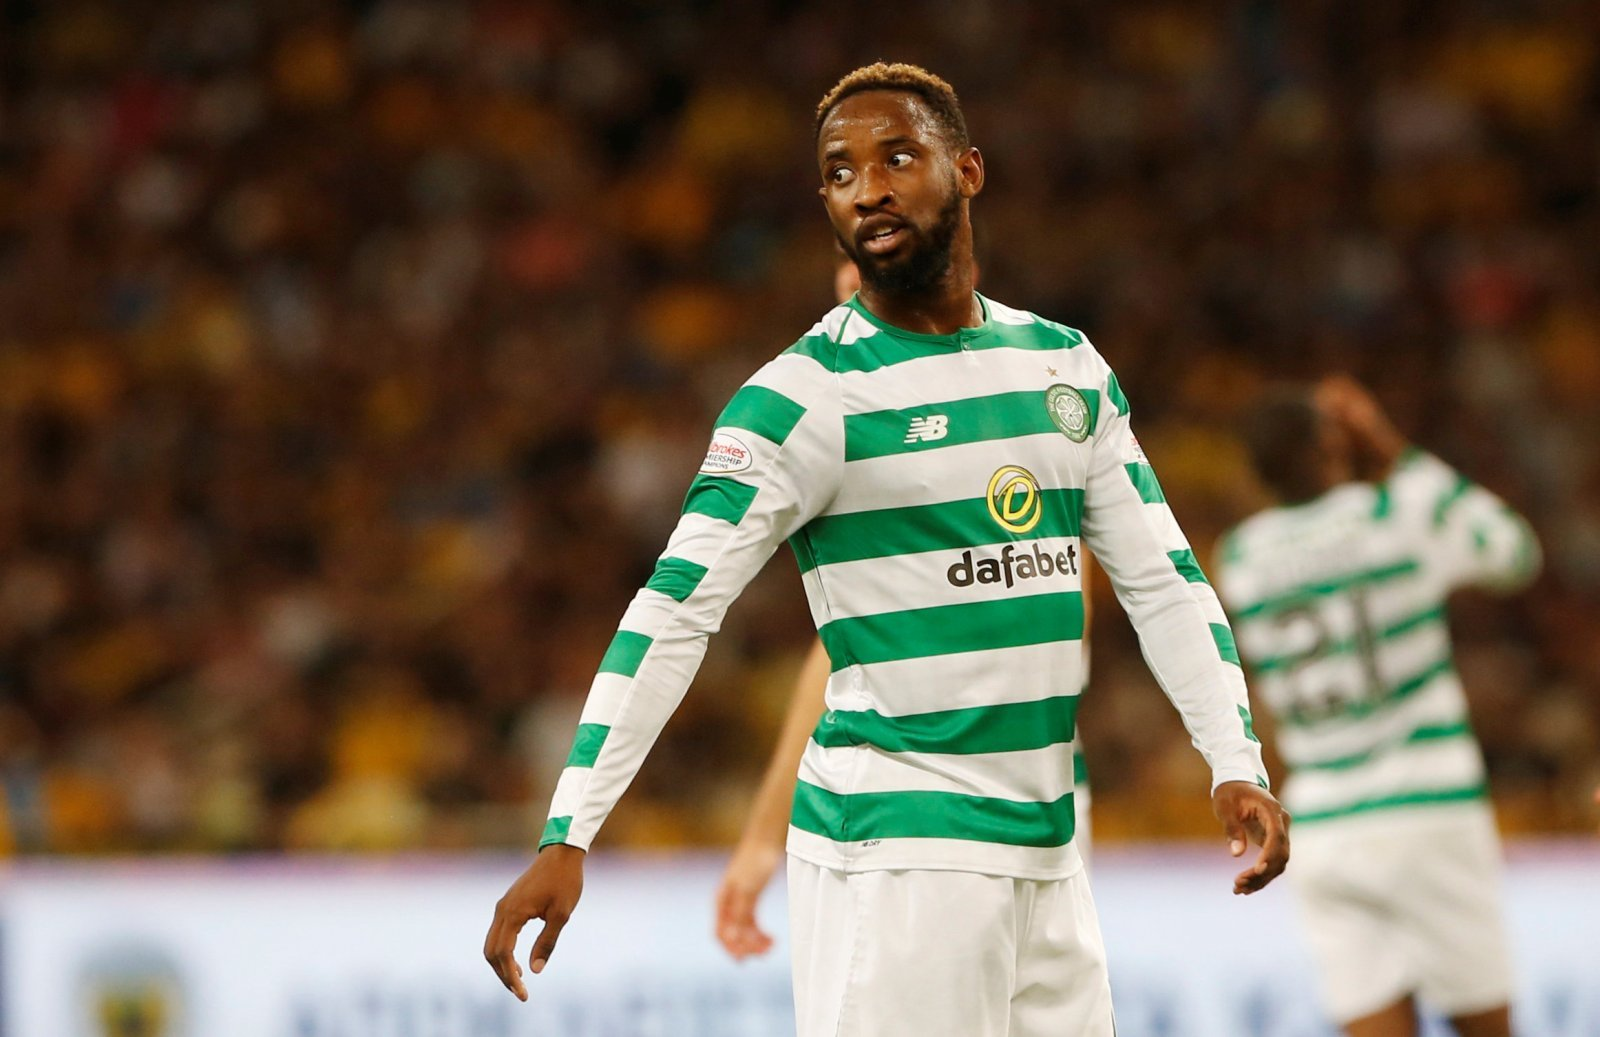 Celtic held talks about sale of Moussa Dembele